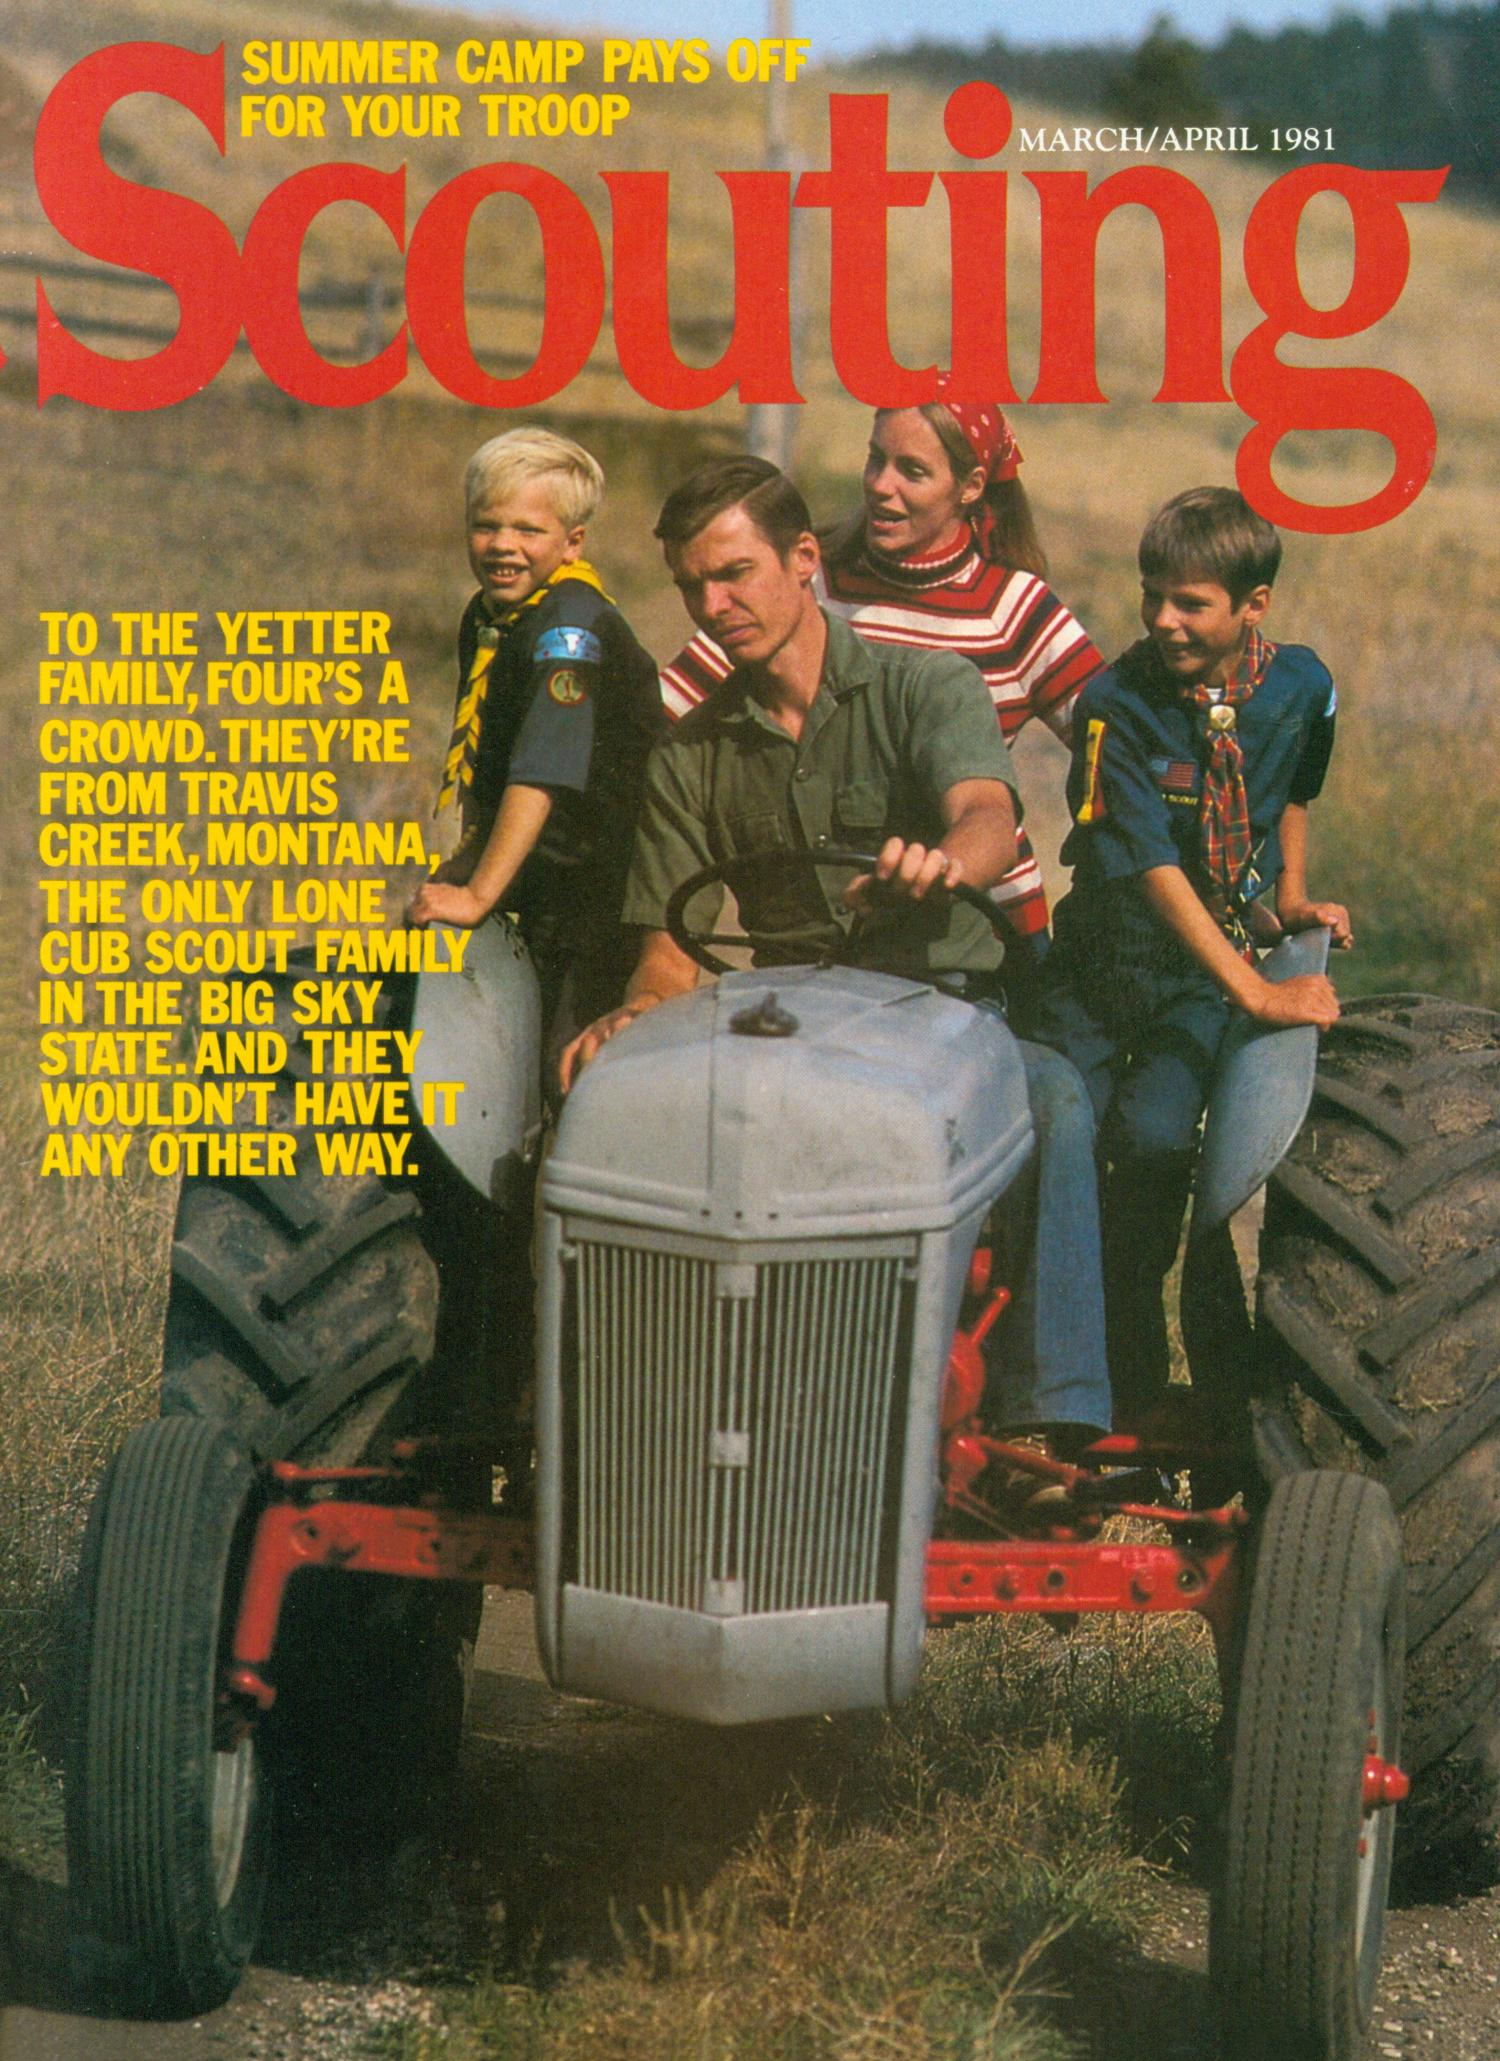 Scouting, Volume 69, Number 2, March-April 1981                                                                                                      Front Cover